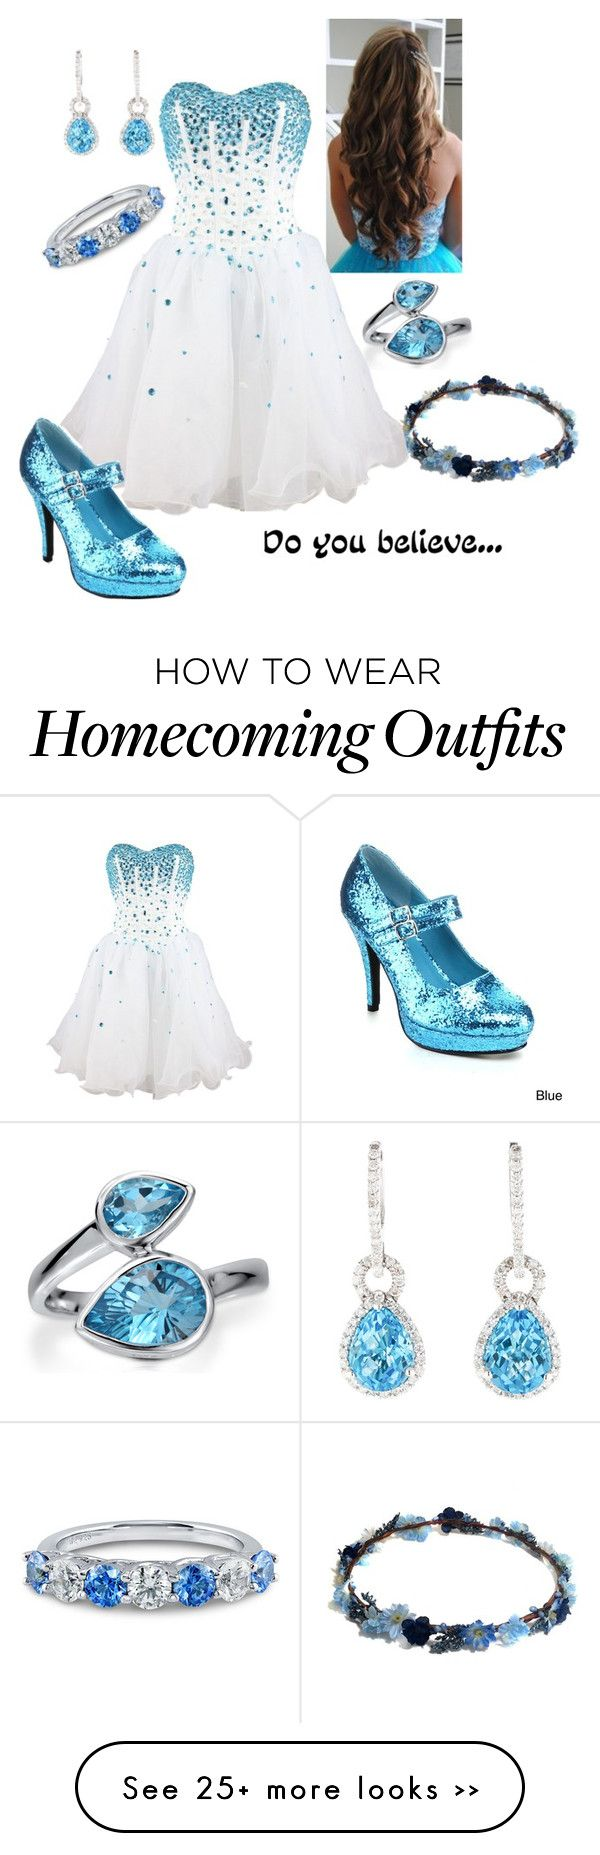 """""""Waterfall Fairy"""" by briony-jae on Polyvore featuring BERRICLE, Ellie, fairy, Waterfall, splash, faerie and mythical"""